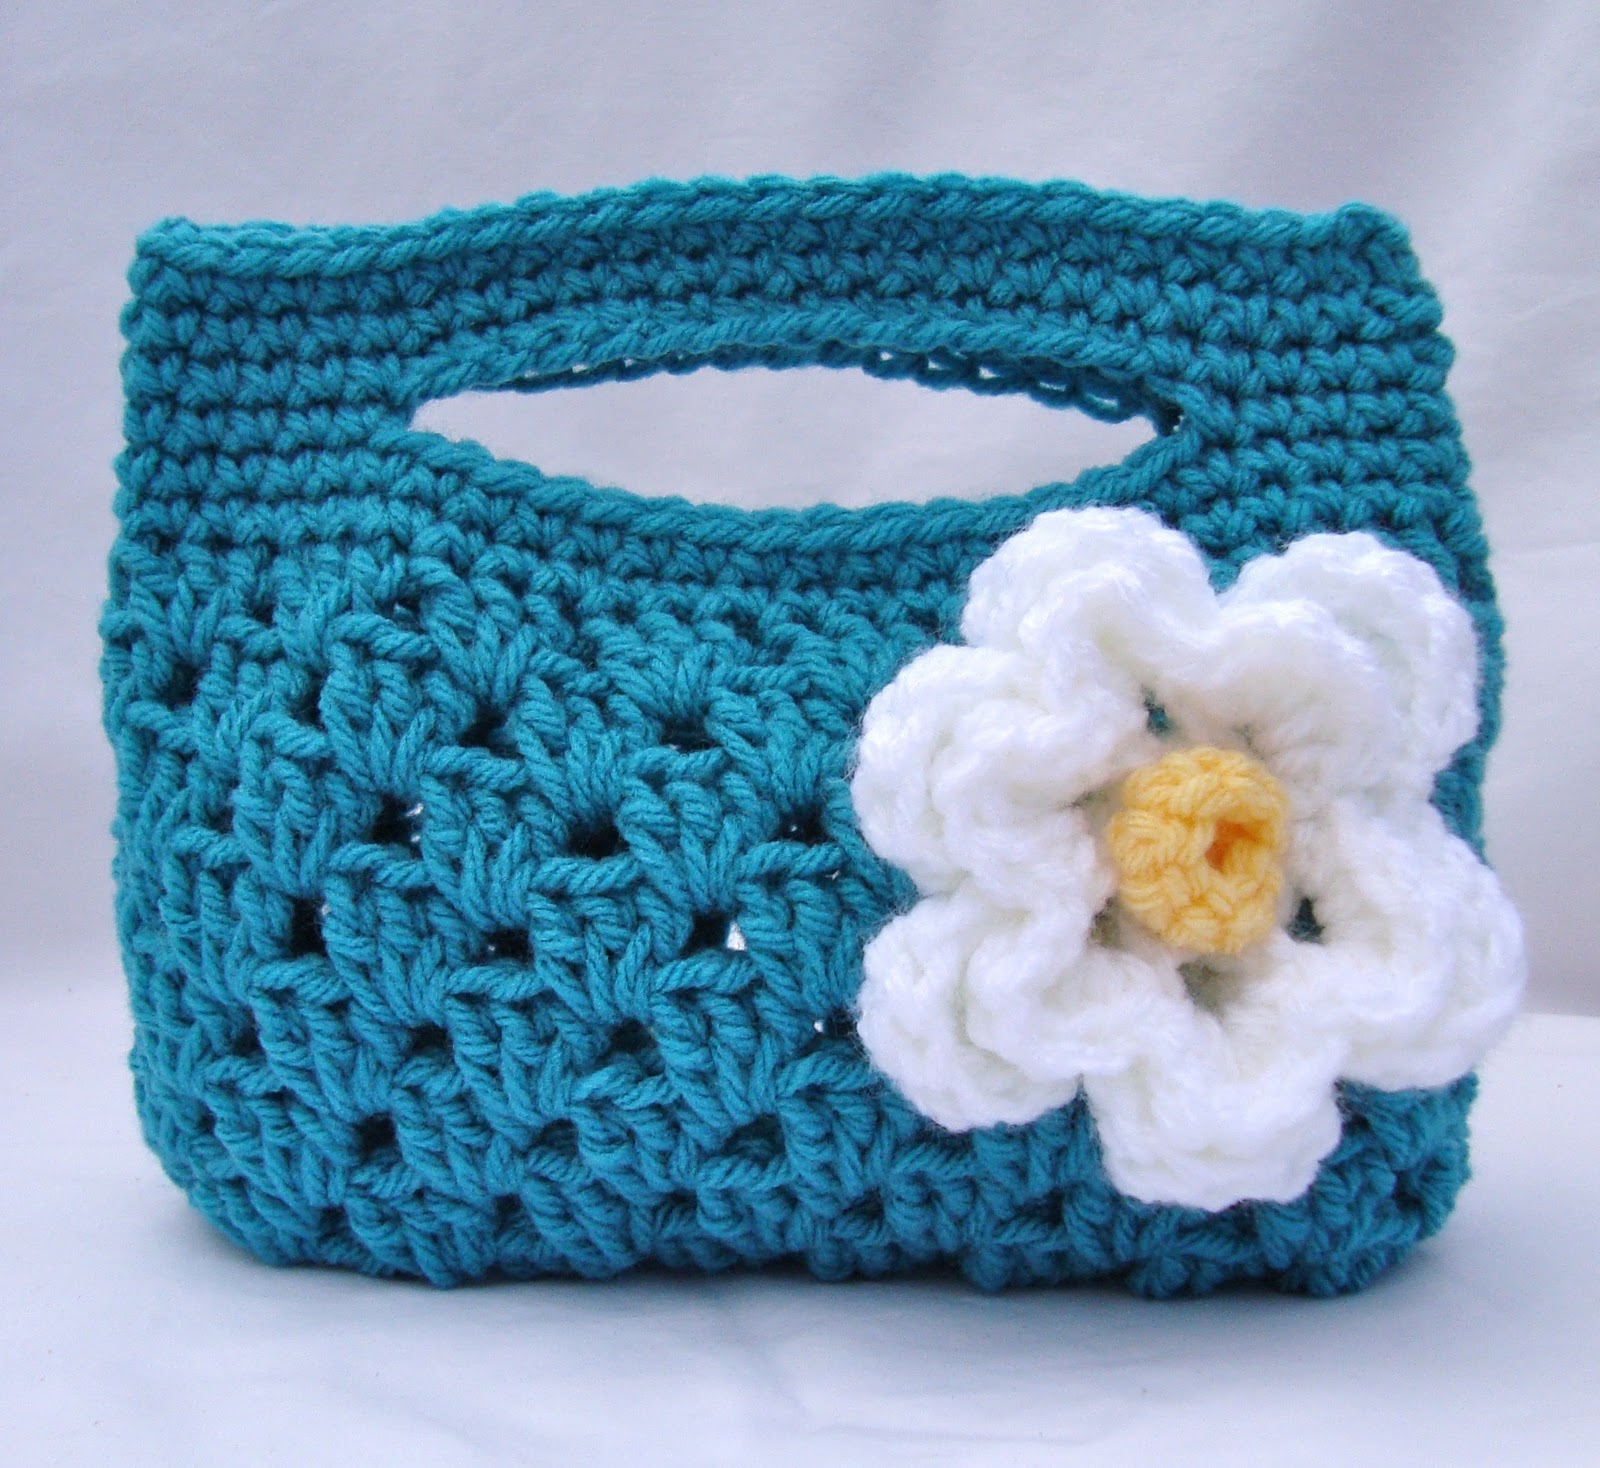 Crochet Small Purse : tangled happy: Granny Stripe Boutique Bag